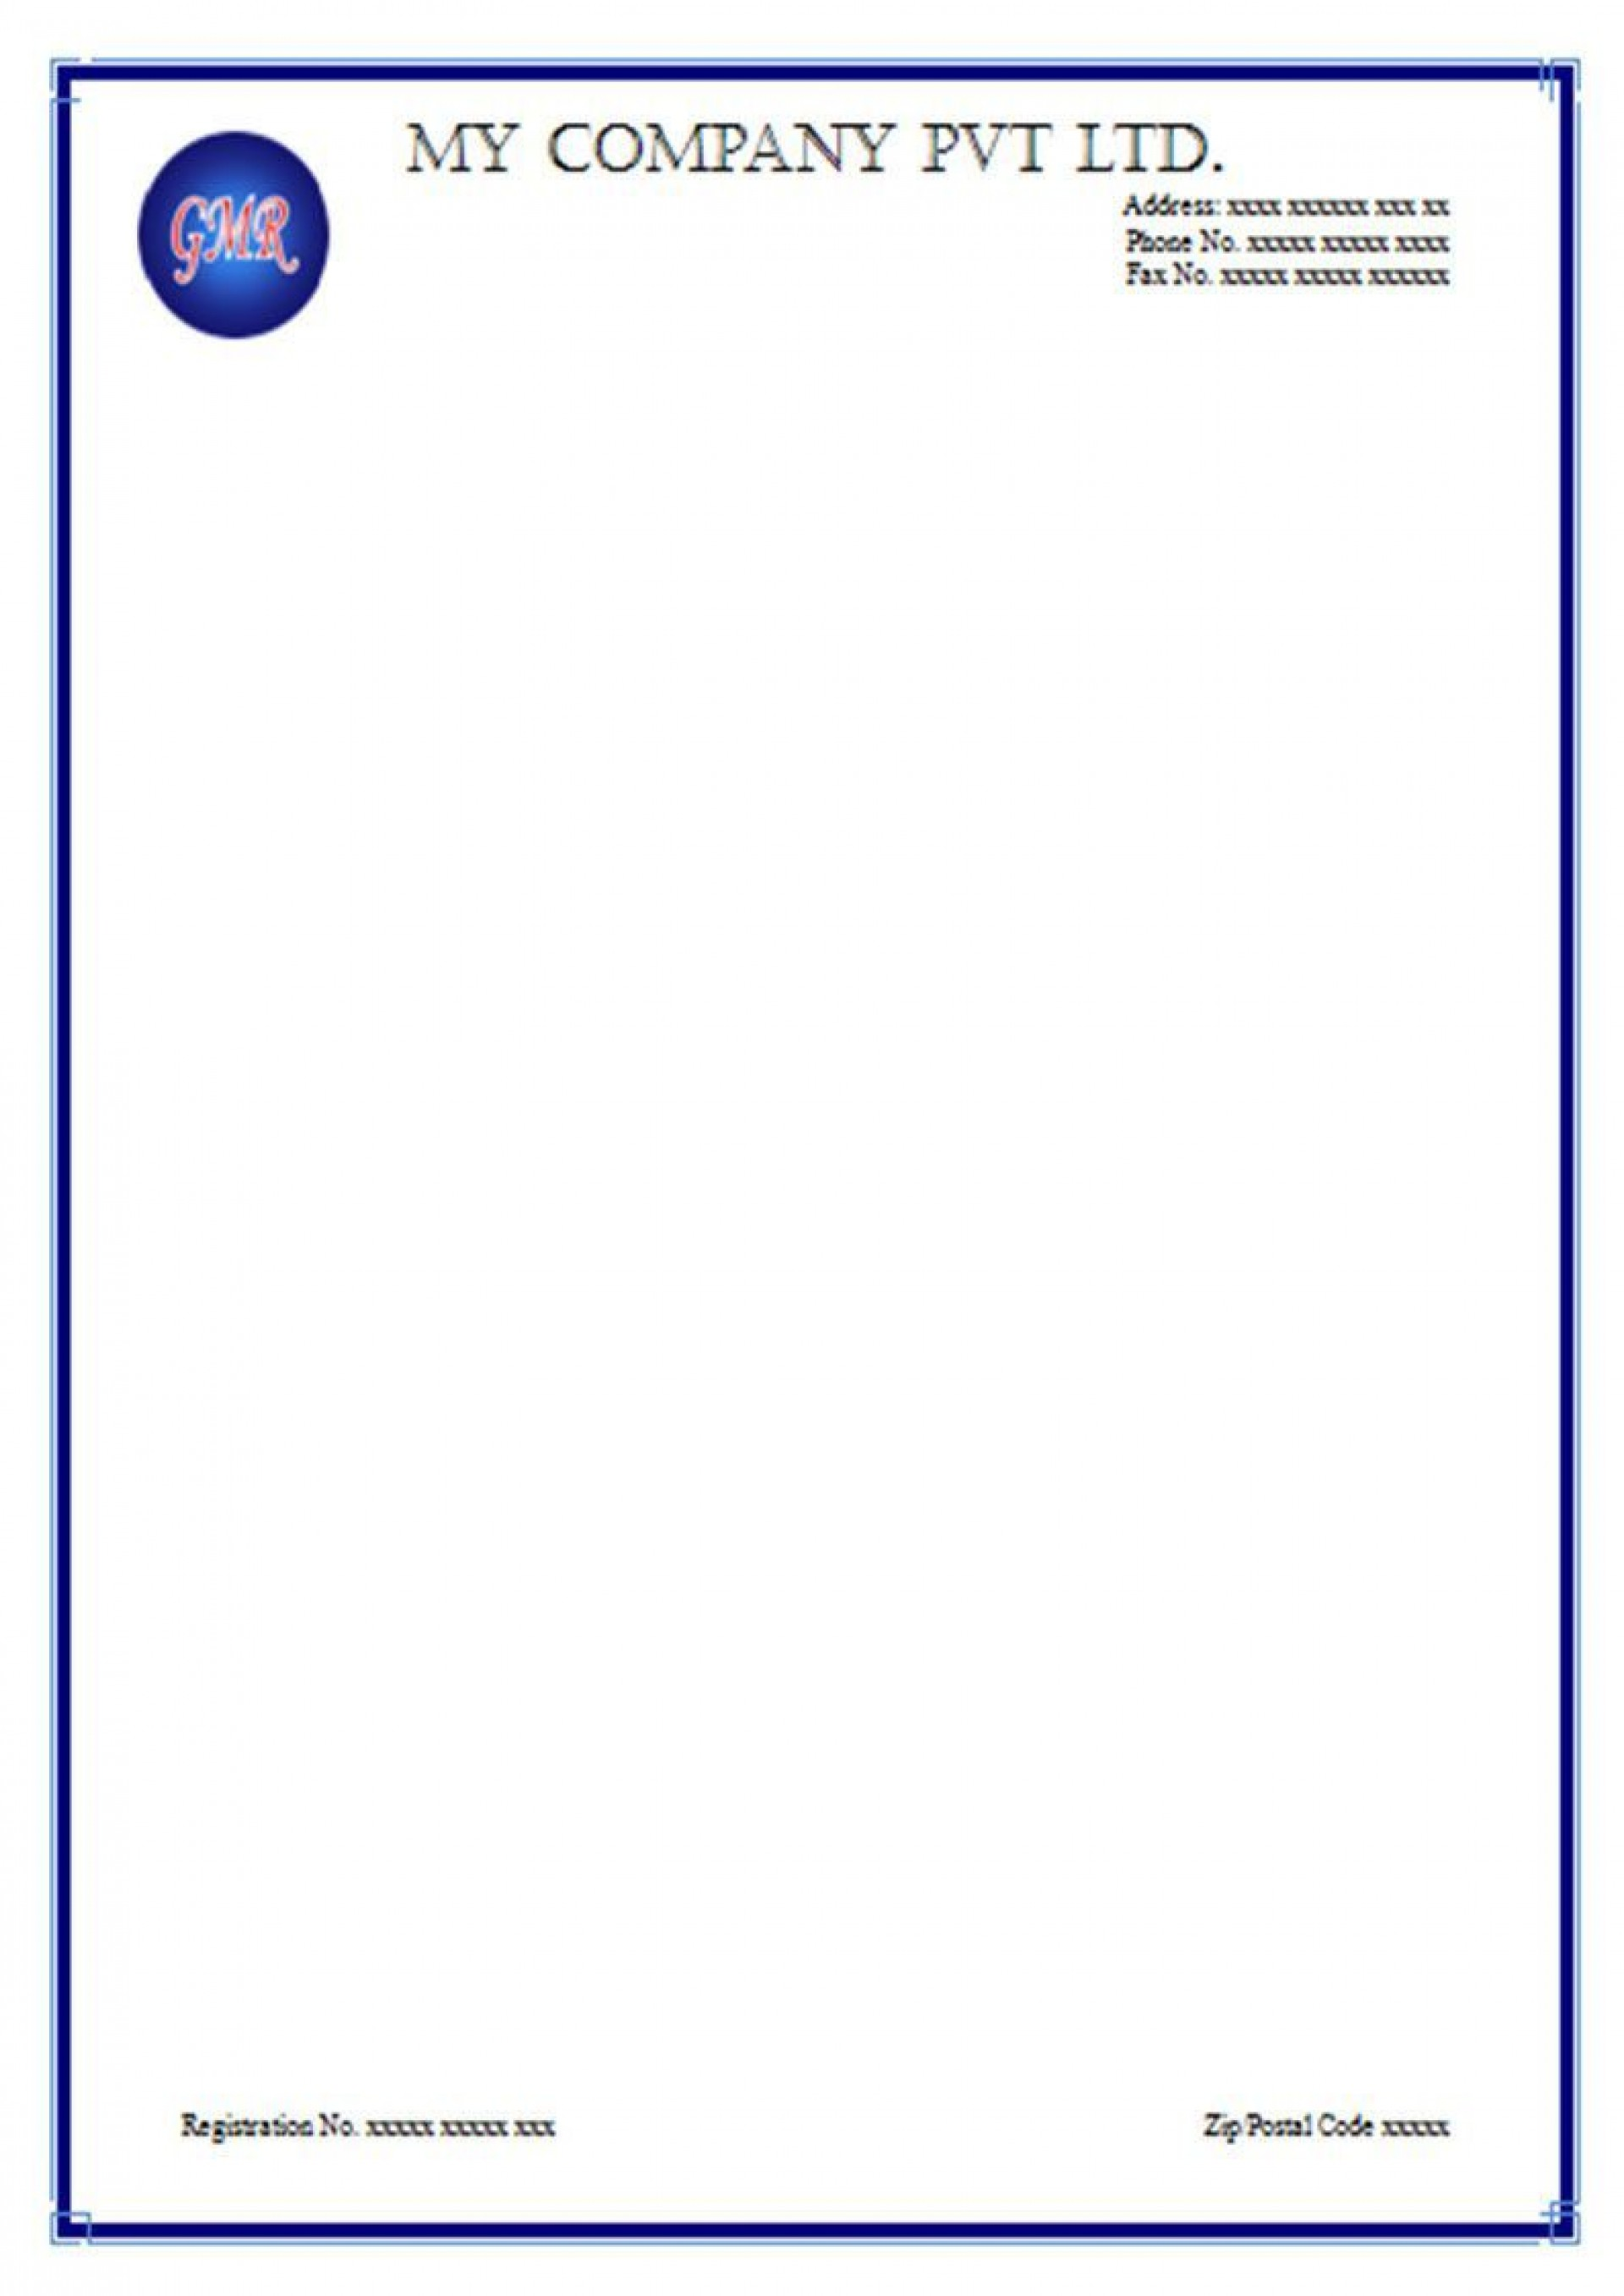 000 Shocking Free Letterhead Template Download Example  Word Psd Sample1920